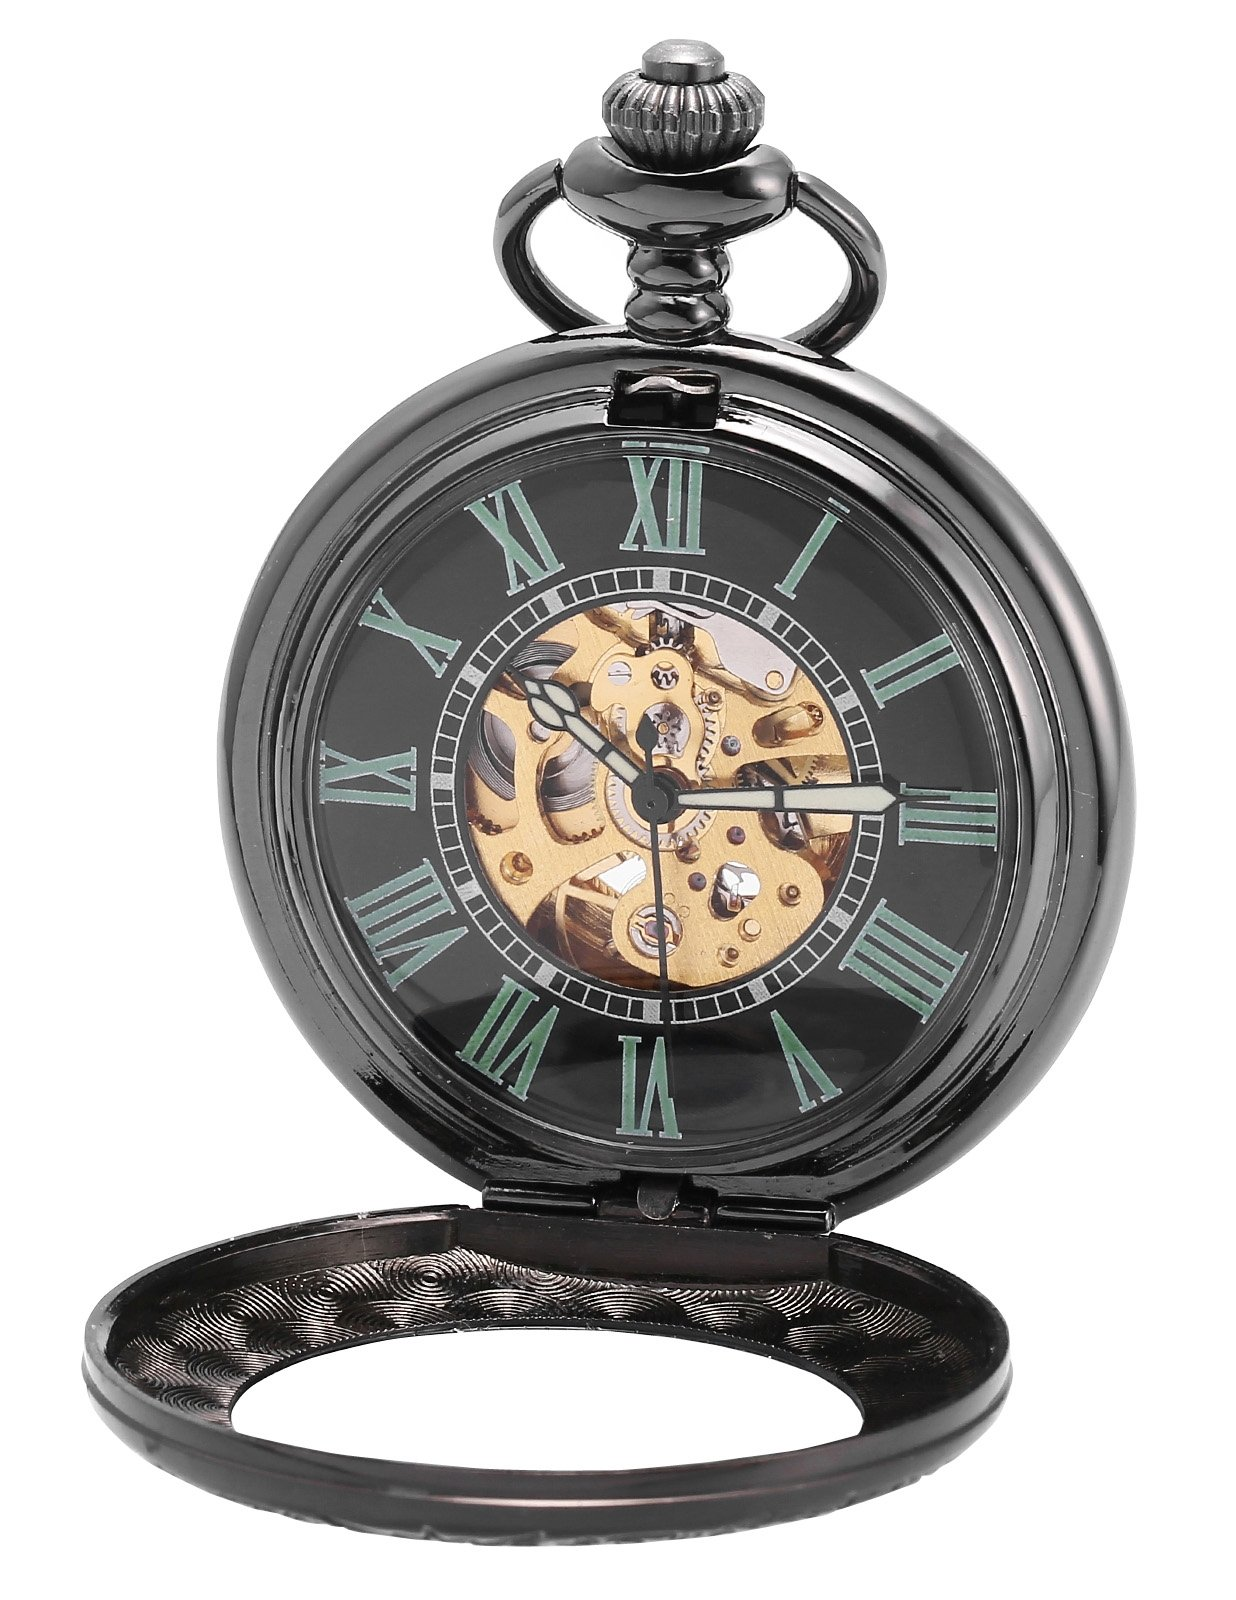 AMPM24 Retro Automatic Mechanical Pocket Watch Roman Number Black Dial WPK200